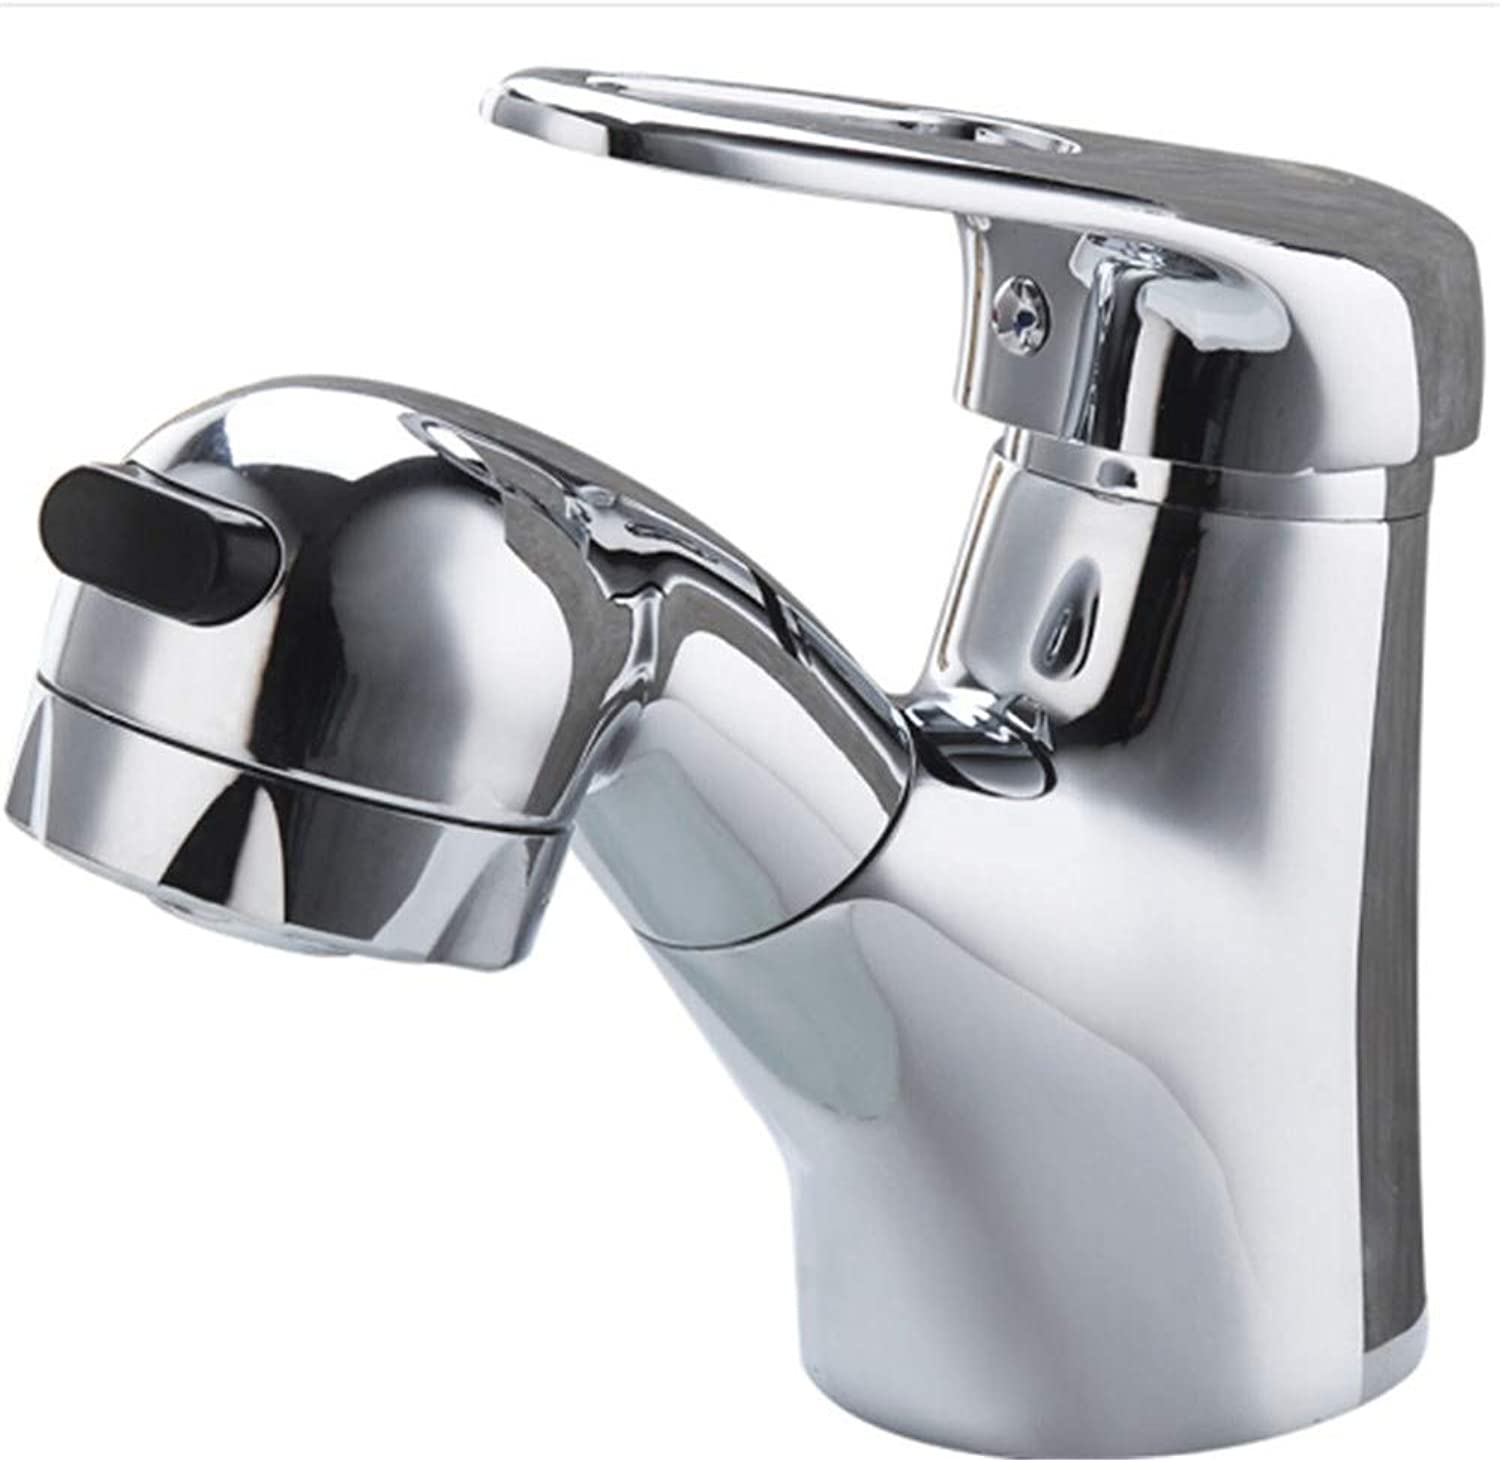 Counter Drinking Designer Archcopper Pull Faucet Washbasin Cold and Hot Faucet